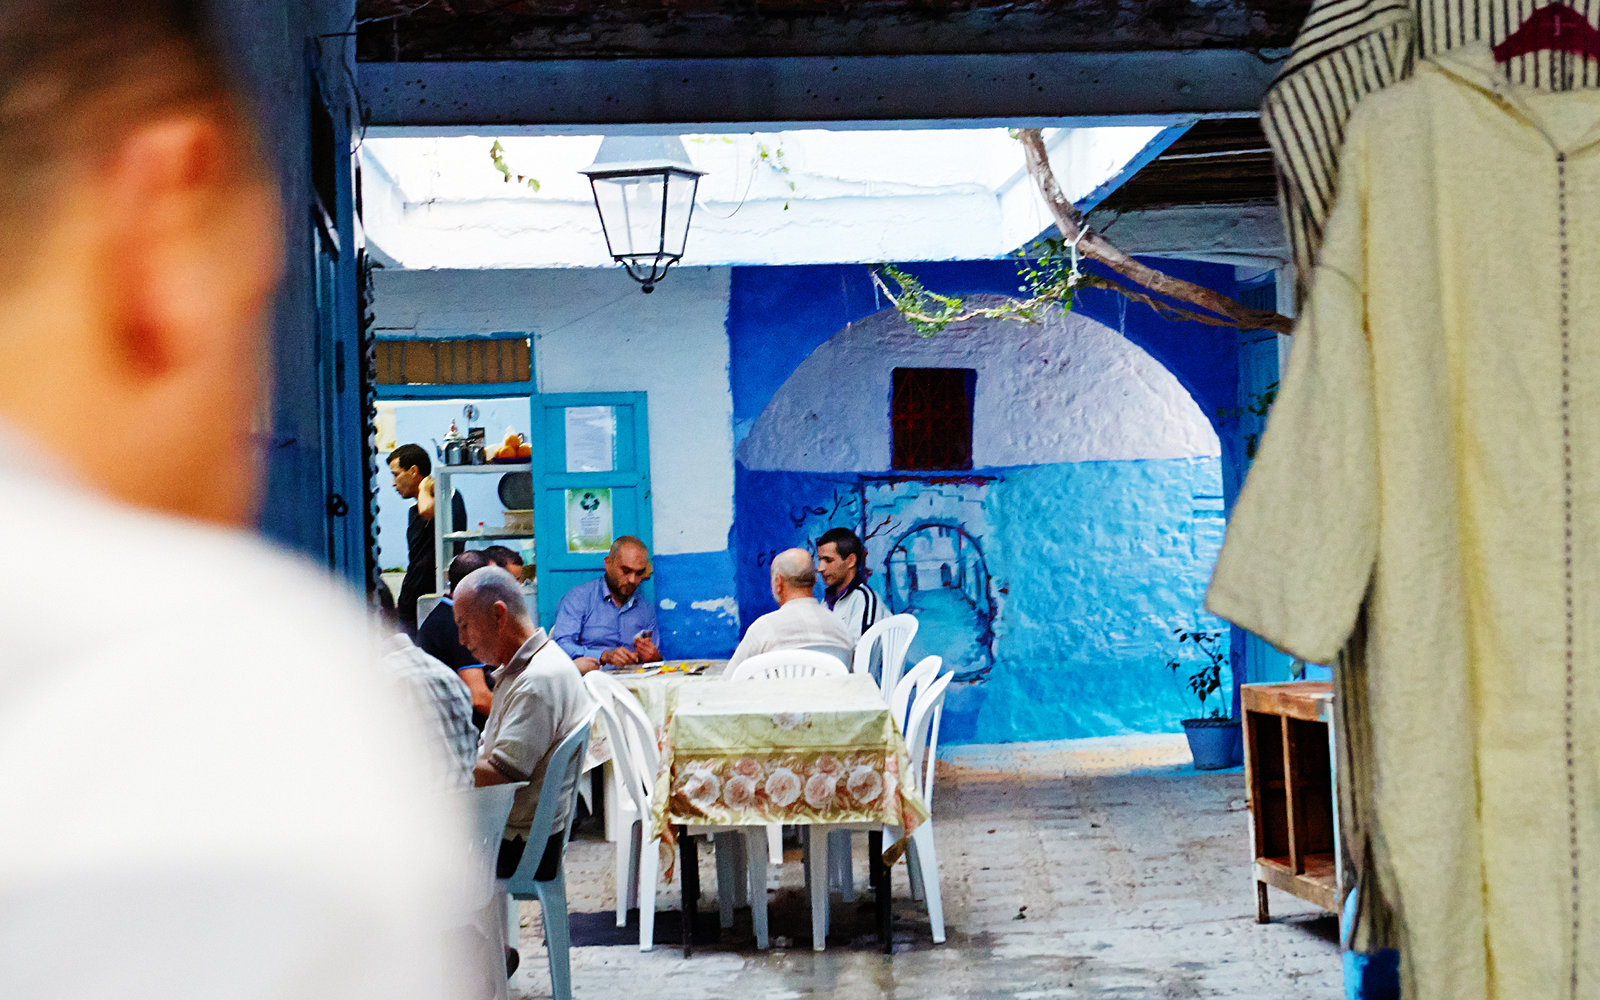 Coffee Shop in Chefchaouen Morocco